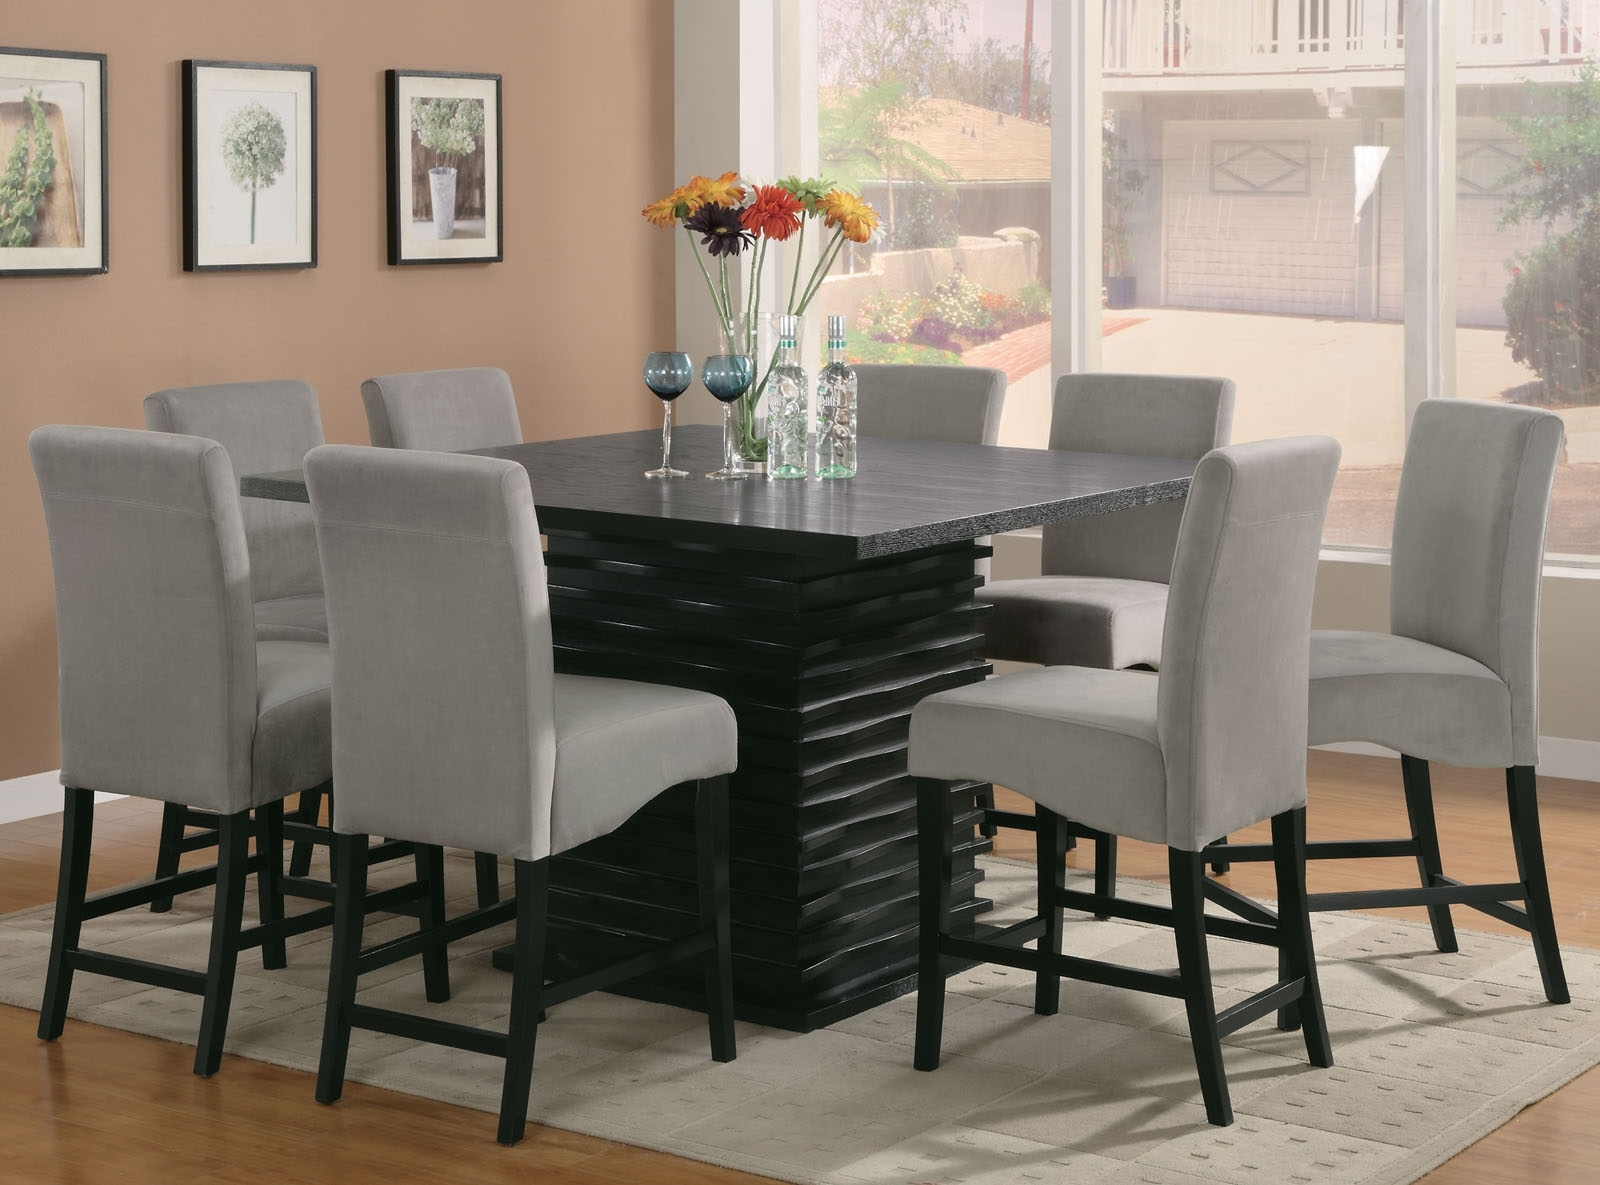 Coaster Stanton 9Pc Counter Height Dining Set In Black With Gray Pertaining To 2017 Dining Tables And 8 Chairs Sets (Gallery 5 of 25)